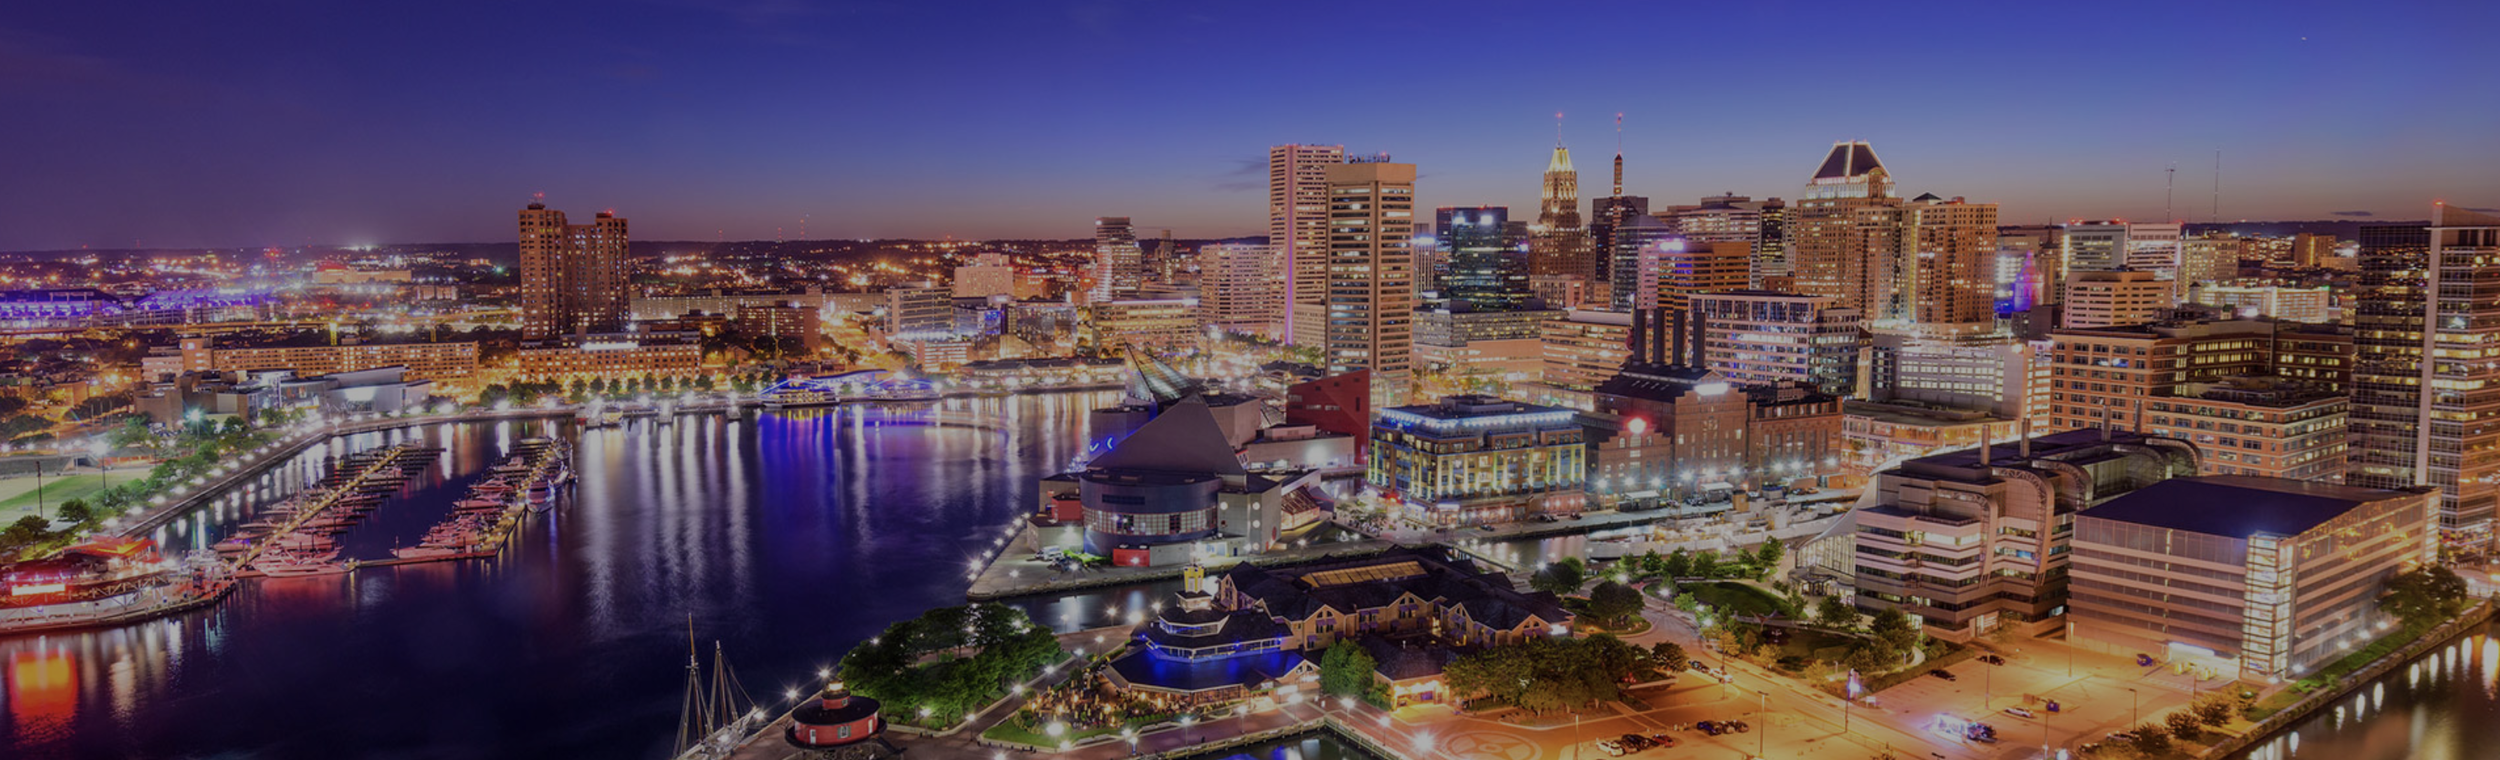 ASHRM Annual Conference   Resilient Leadership, Trusted Care  October 13-16, 2019 Baltimore, MD   Register Now